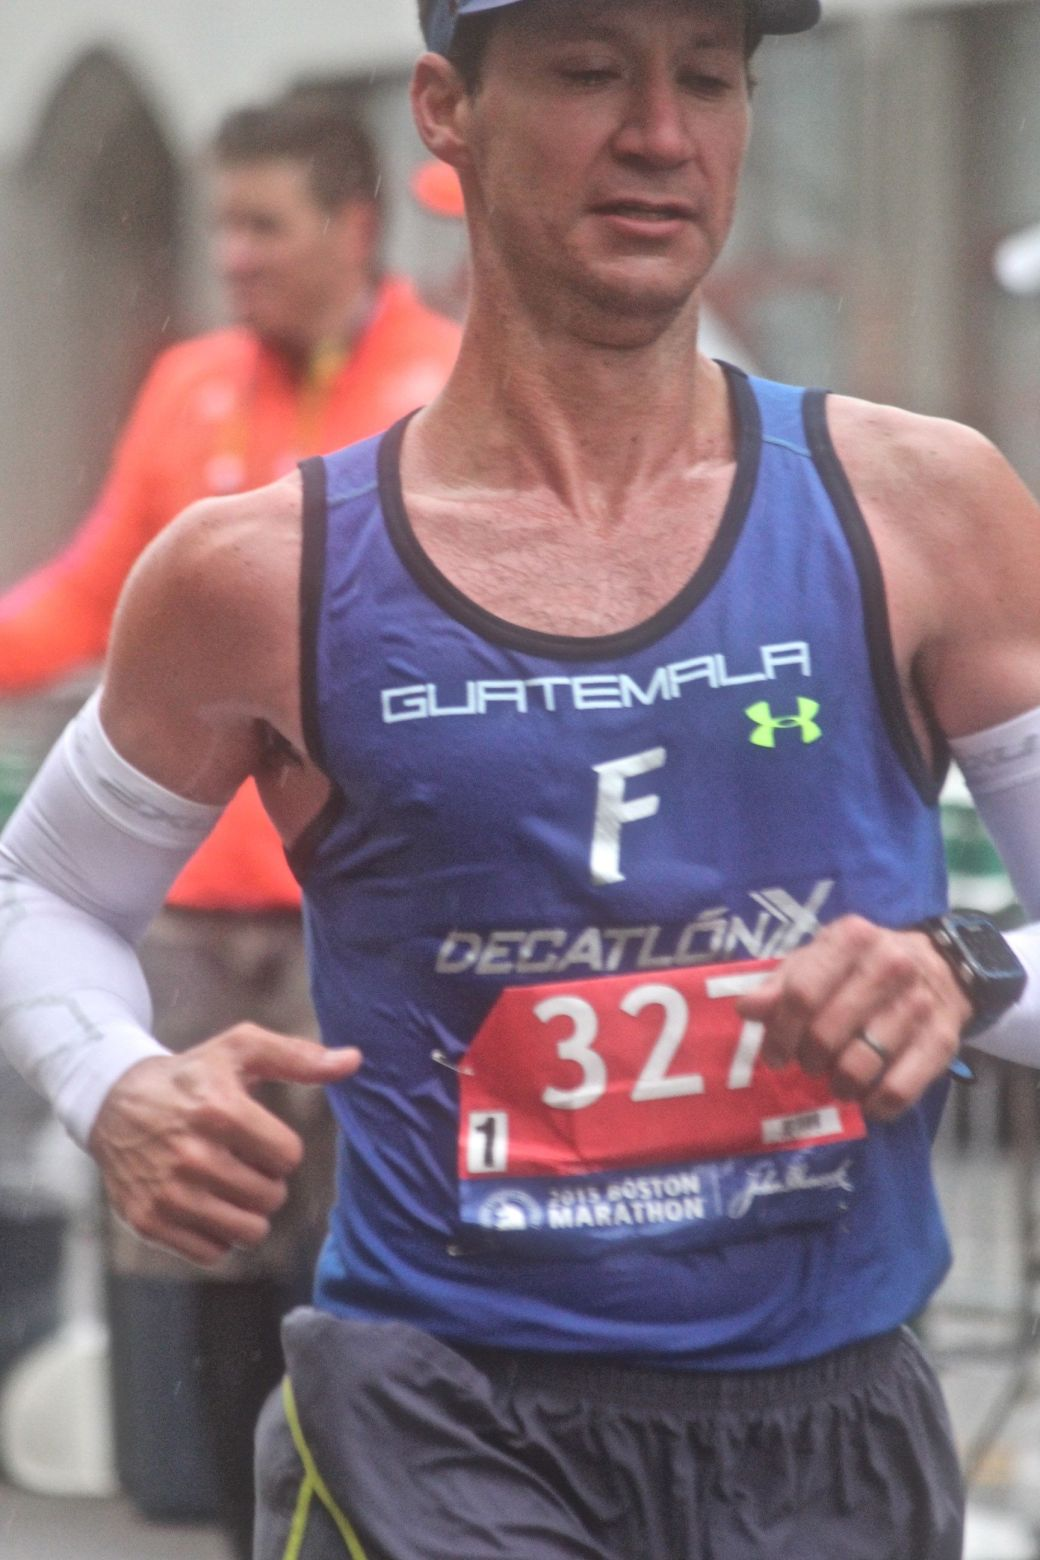 boston marathon april 20 2015 racer number 327